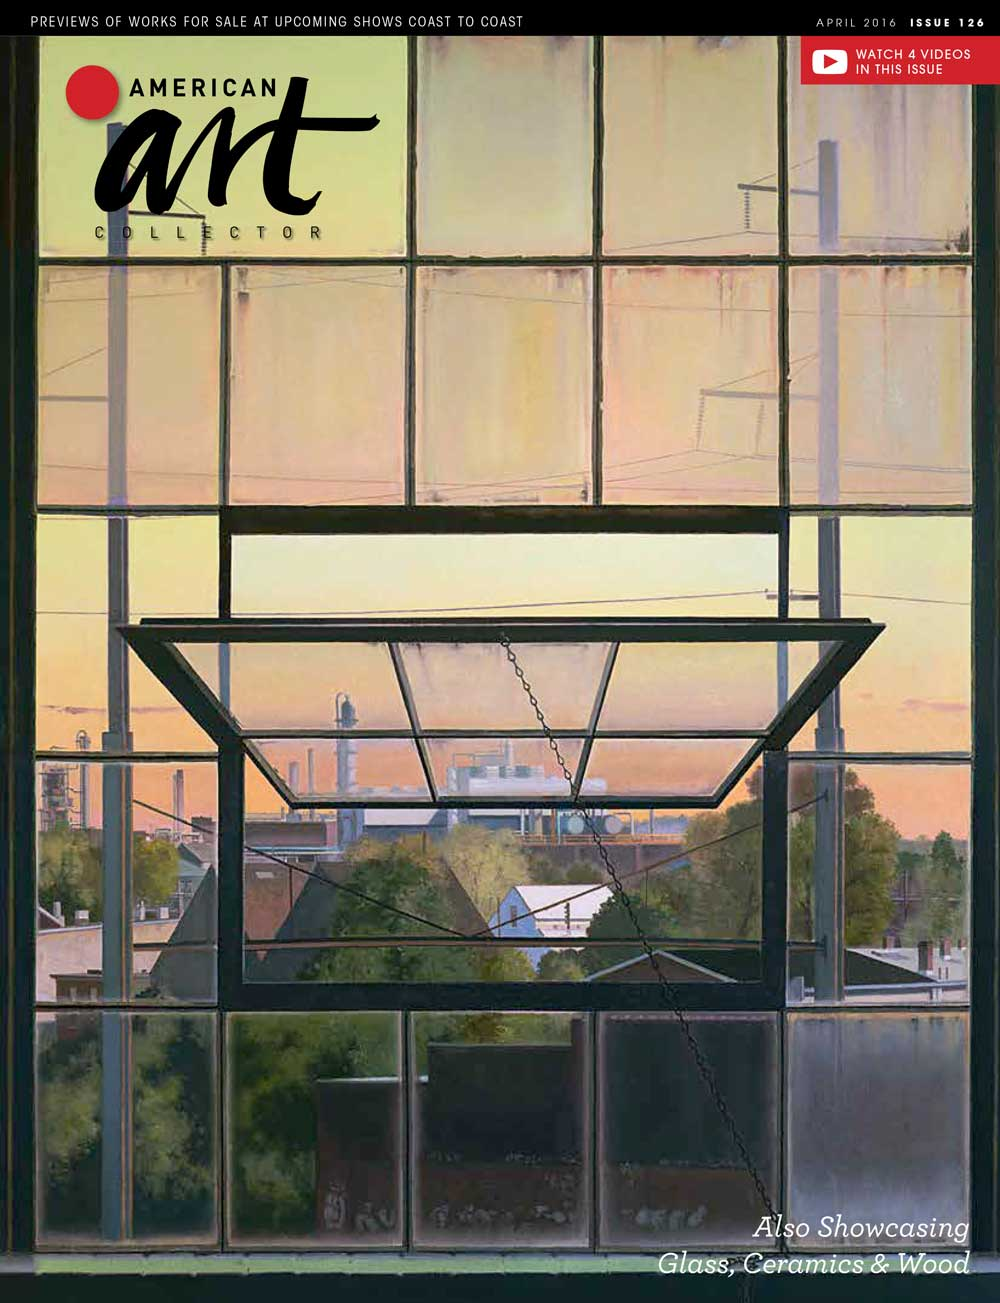 American Art Collector, April 2016